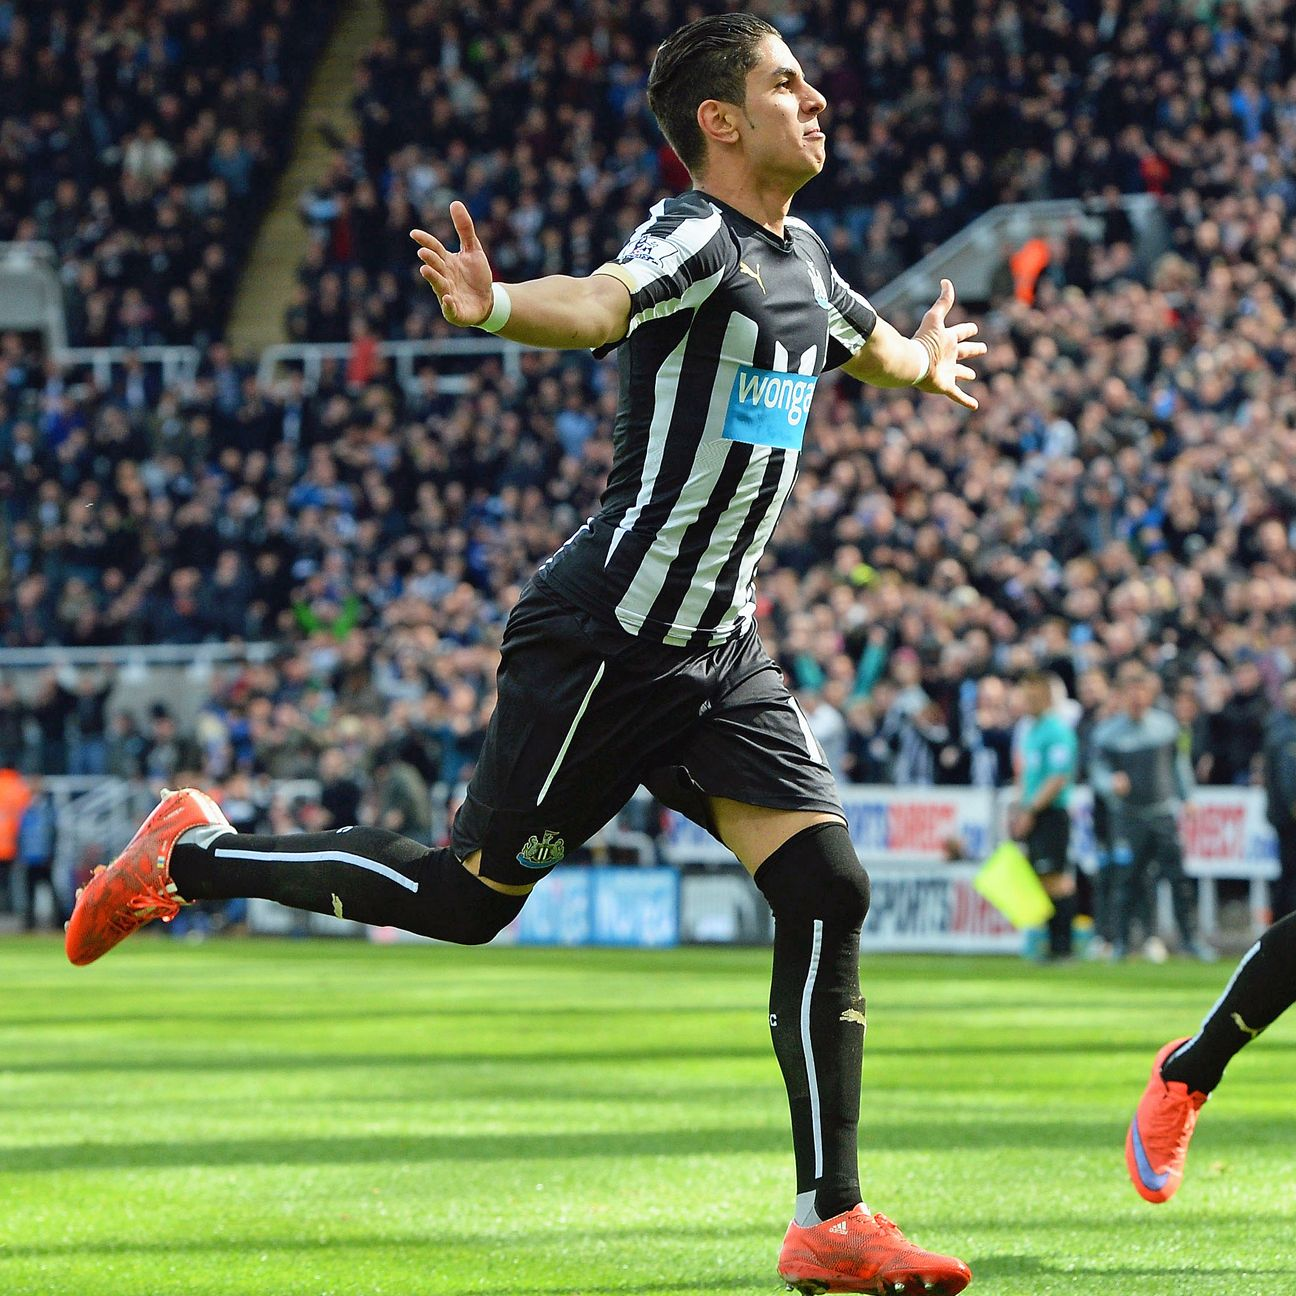 Ayoze Perez's goal helped end Newcastle's eight-match losing streak.